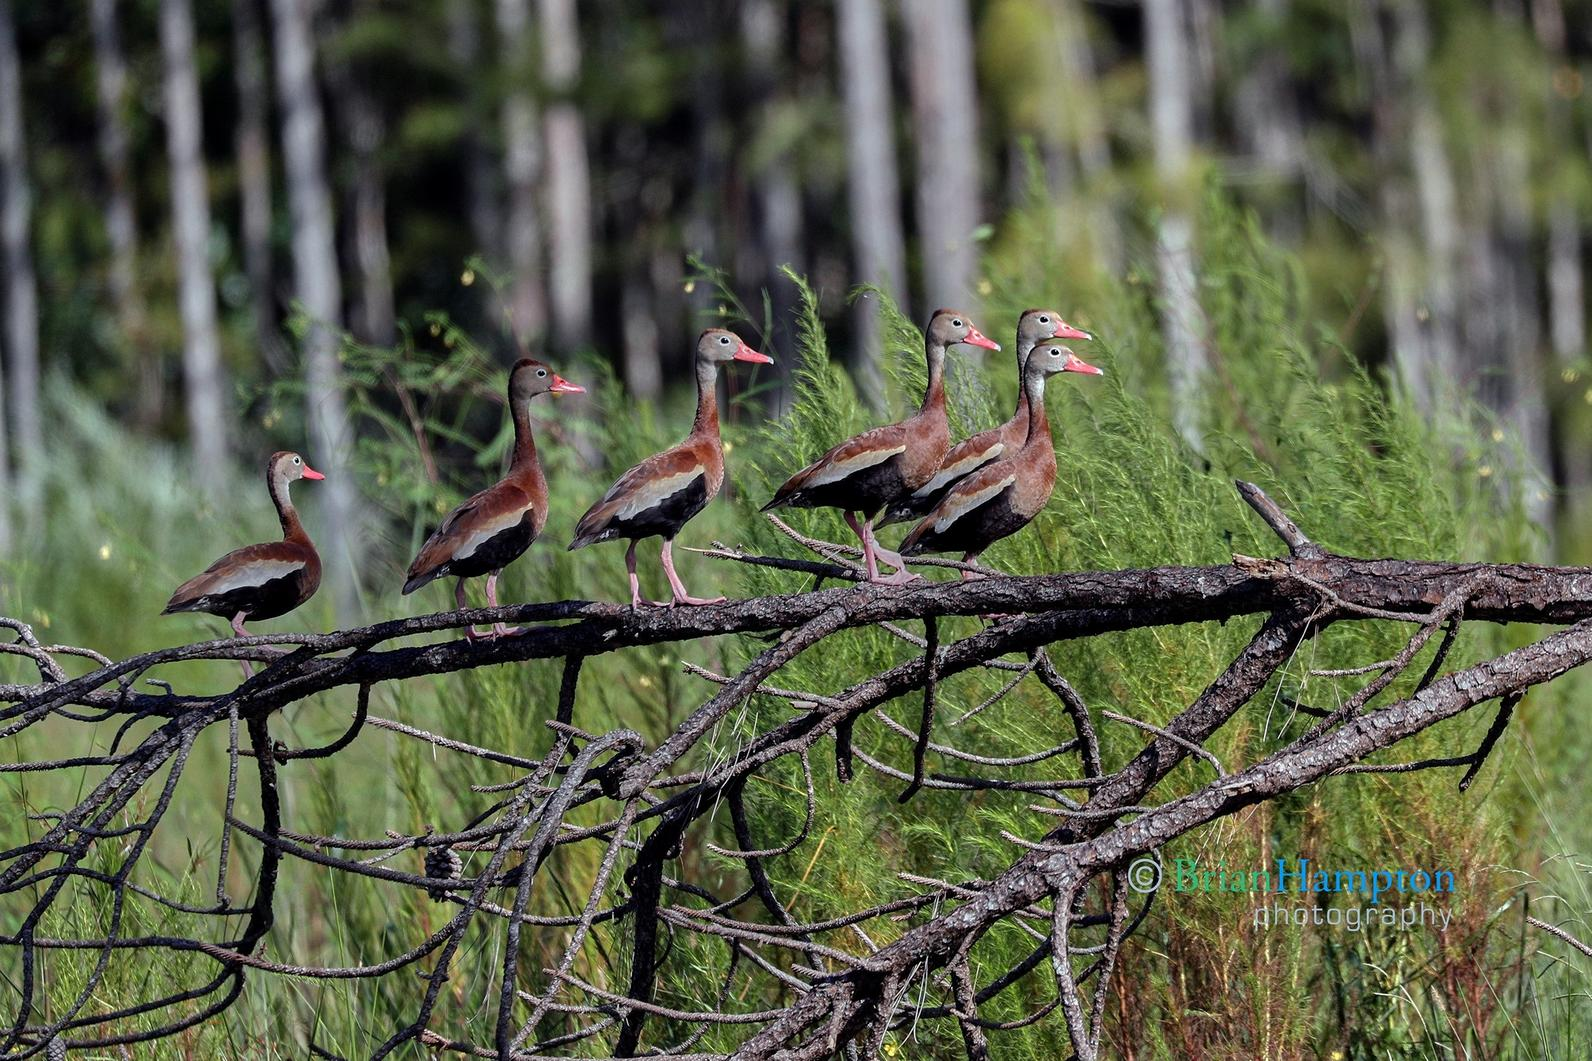 Black Bellied Whistling Ducks are a common sight in the marsh and prairie restoration plots.